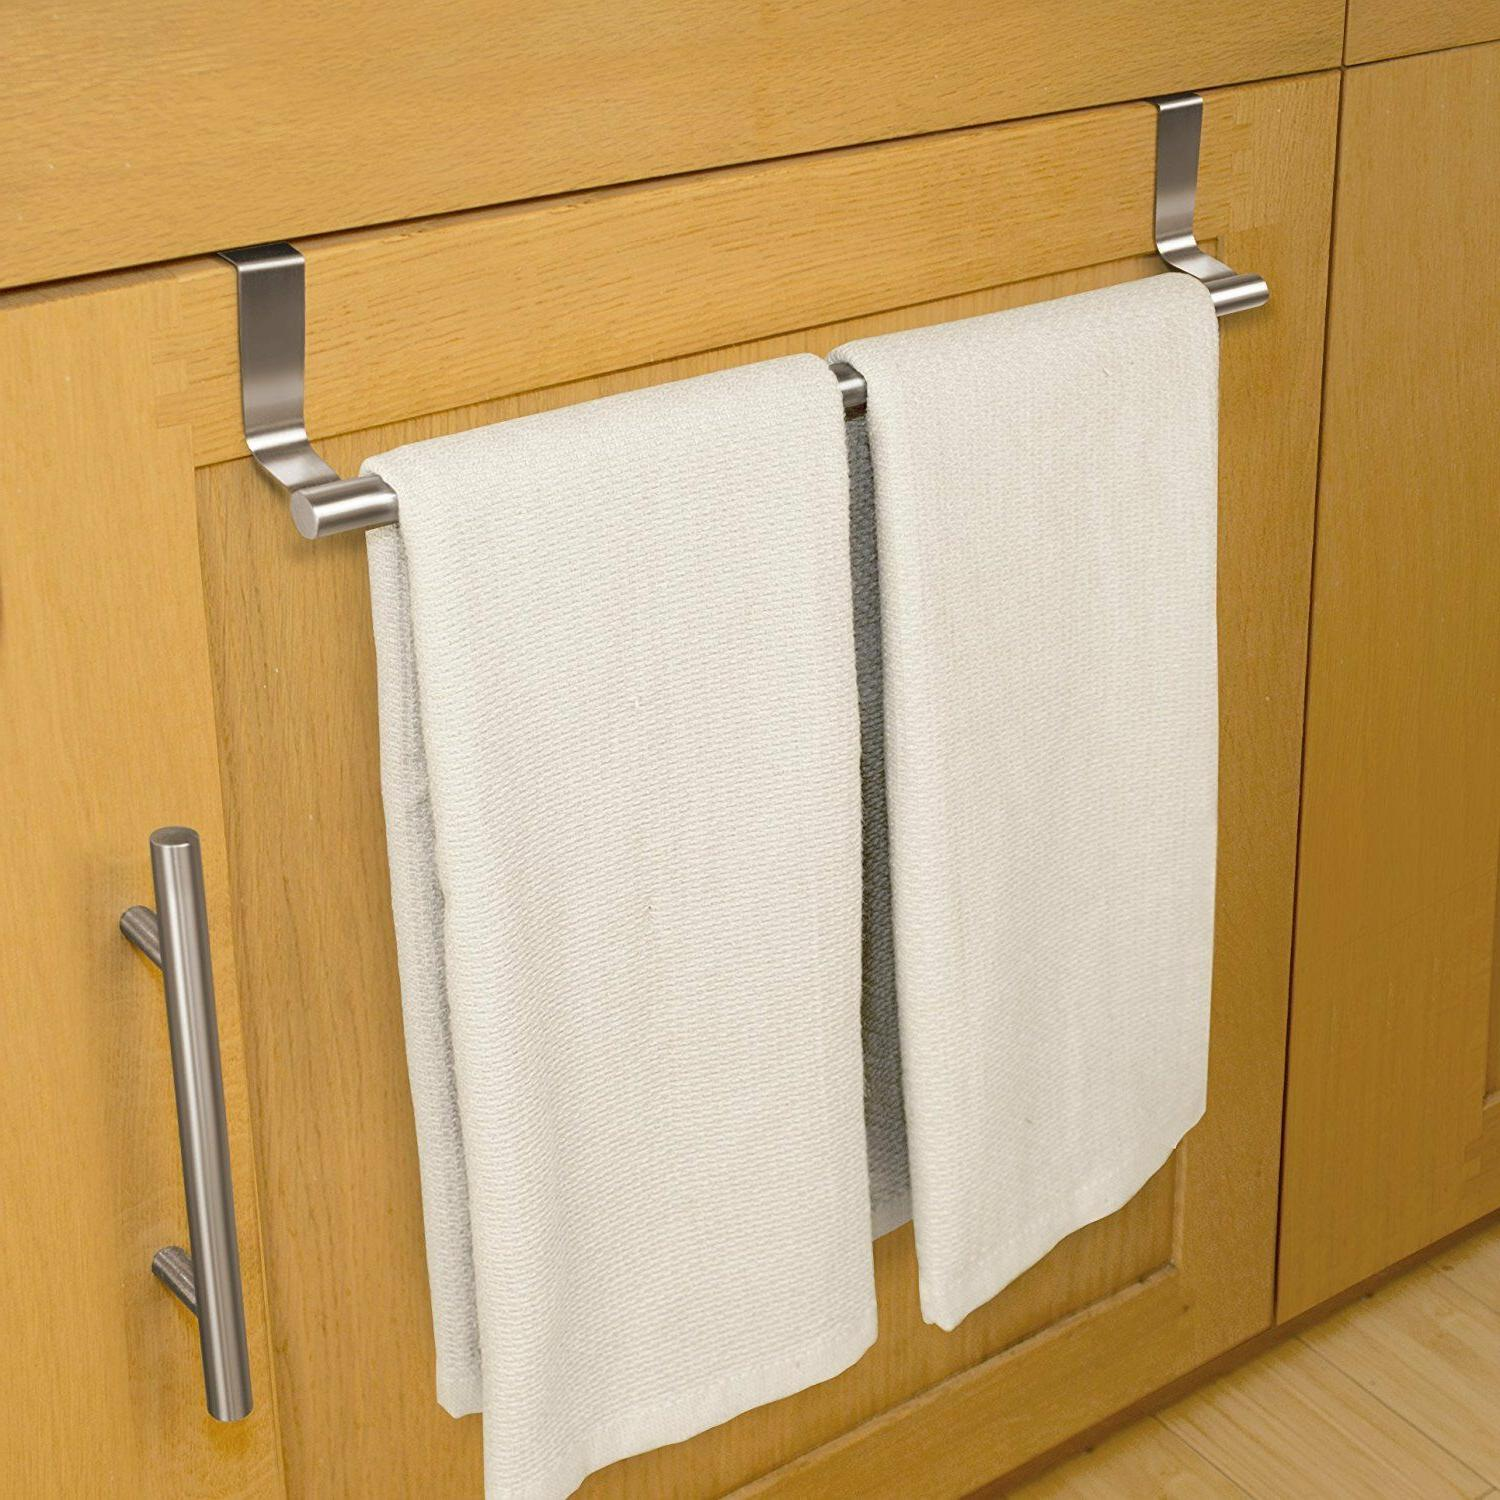 New The Cabinet Towel Bar Bath